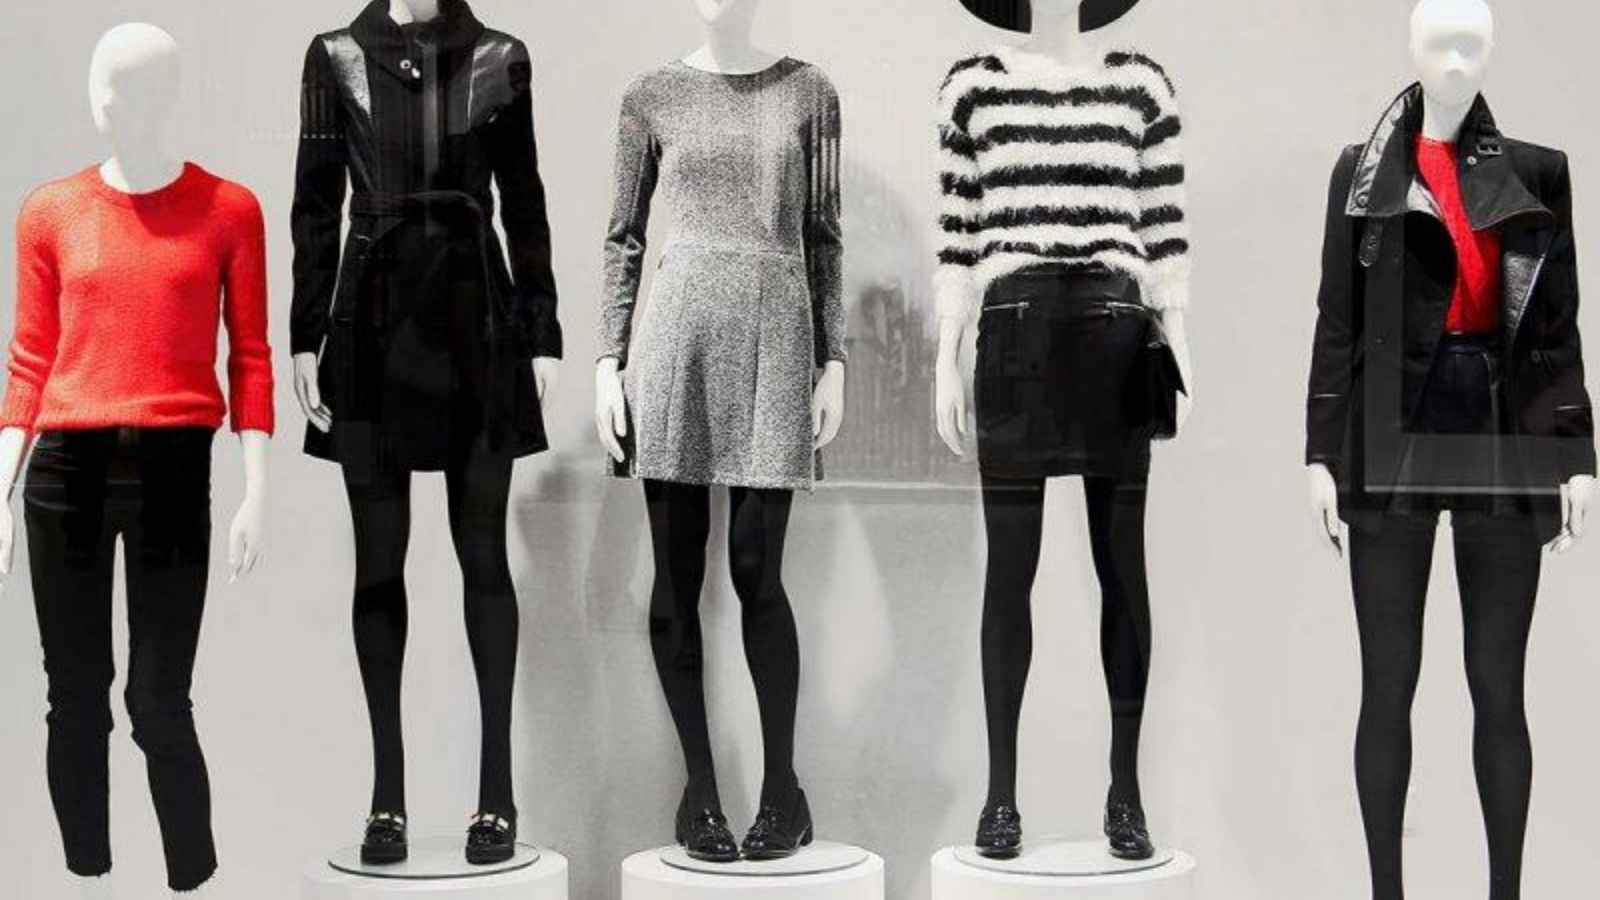 4 Benefits of Using a Mannequin for Your Displays